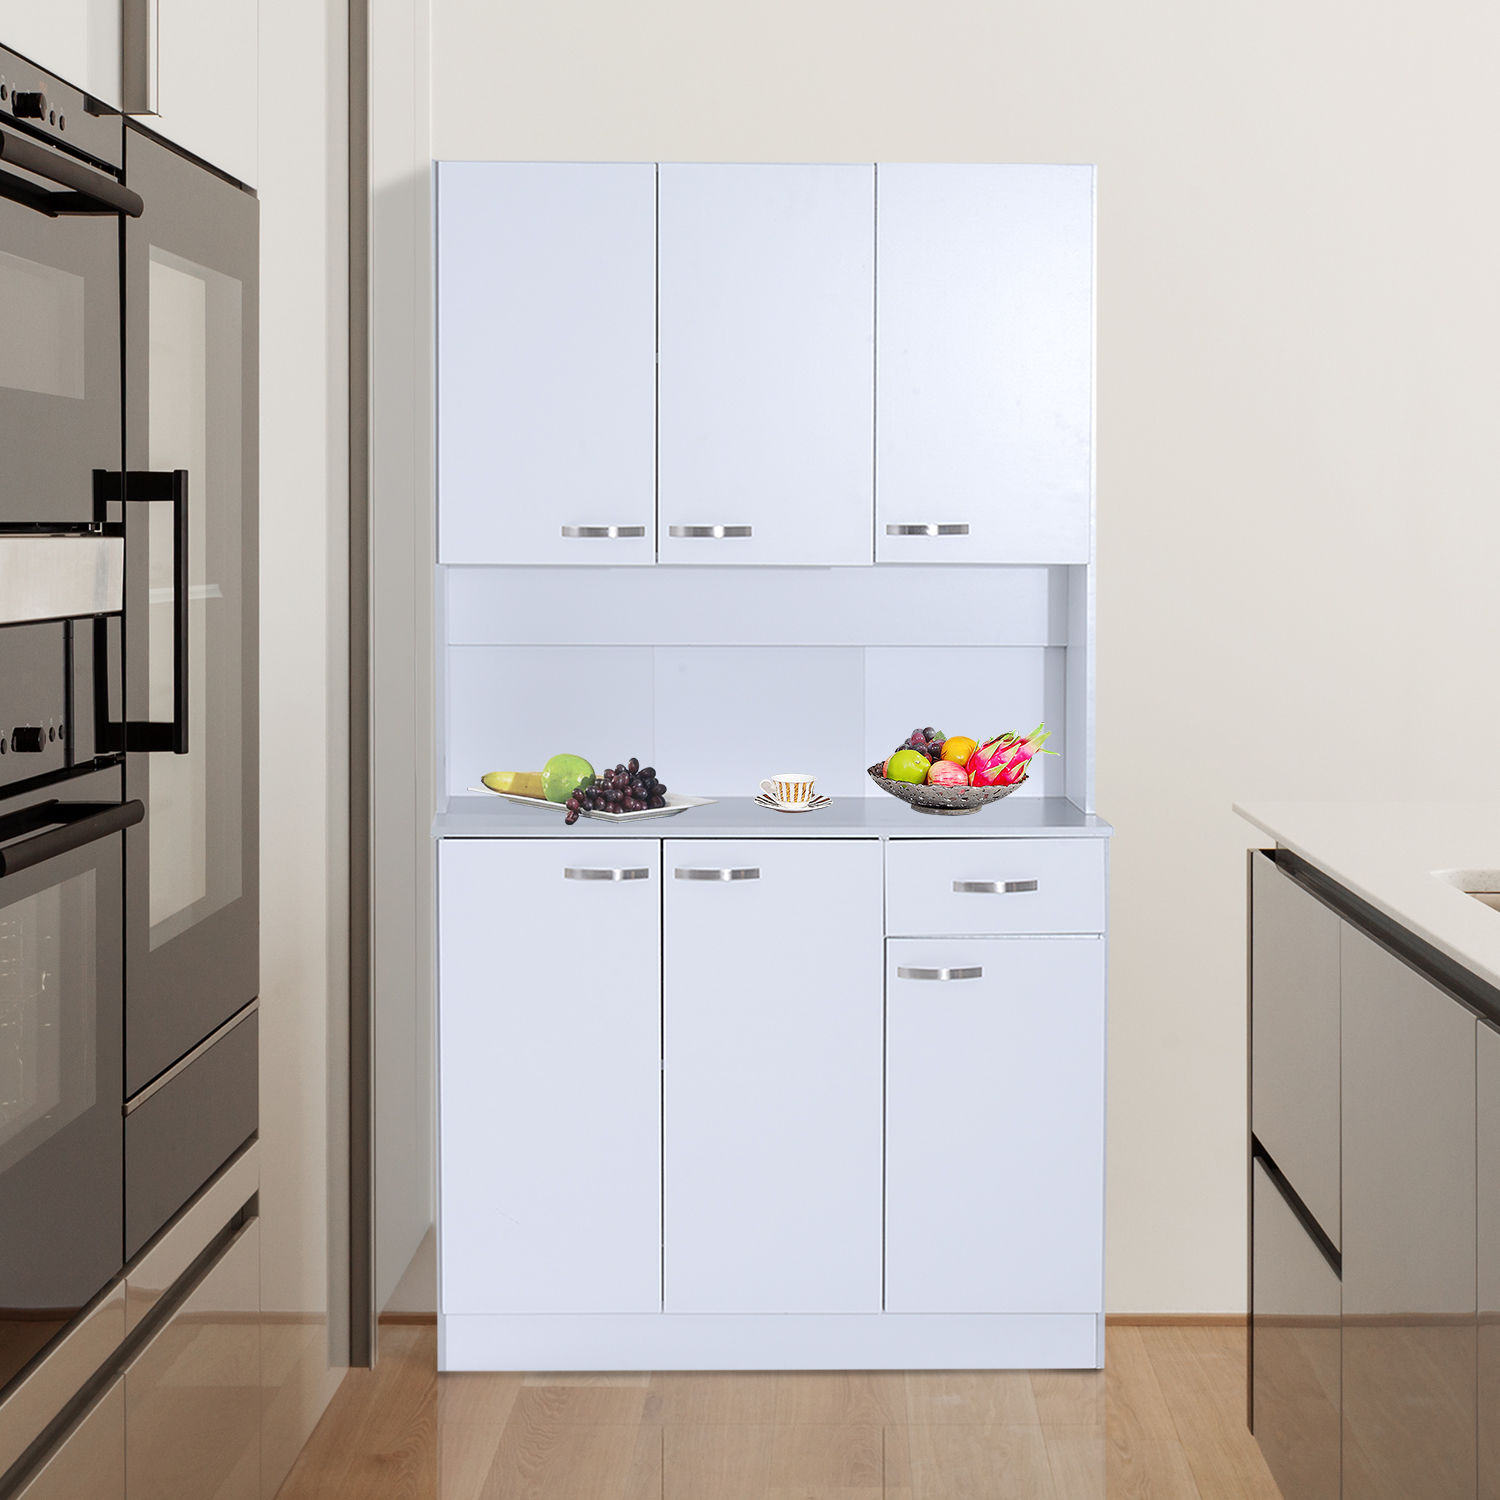 Details about HOMCOM Kitchen Pantry Cupboard Wooden Storage Cabinet  Organizer Shelf White